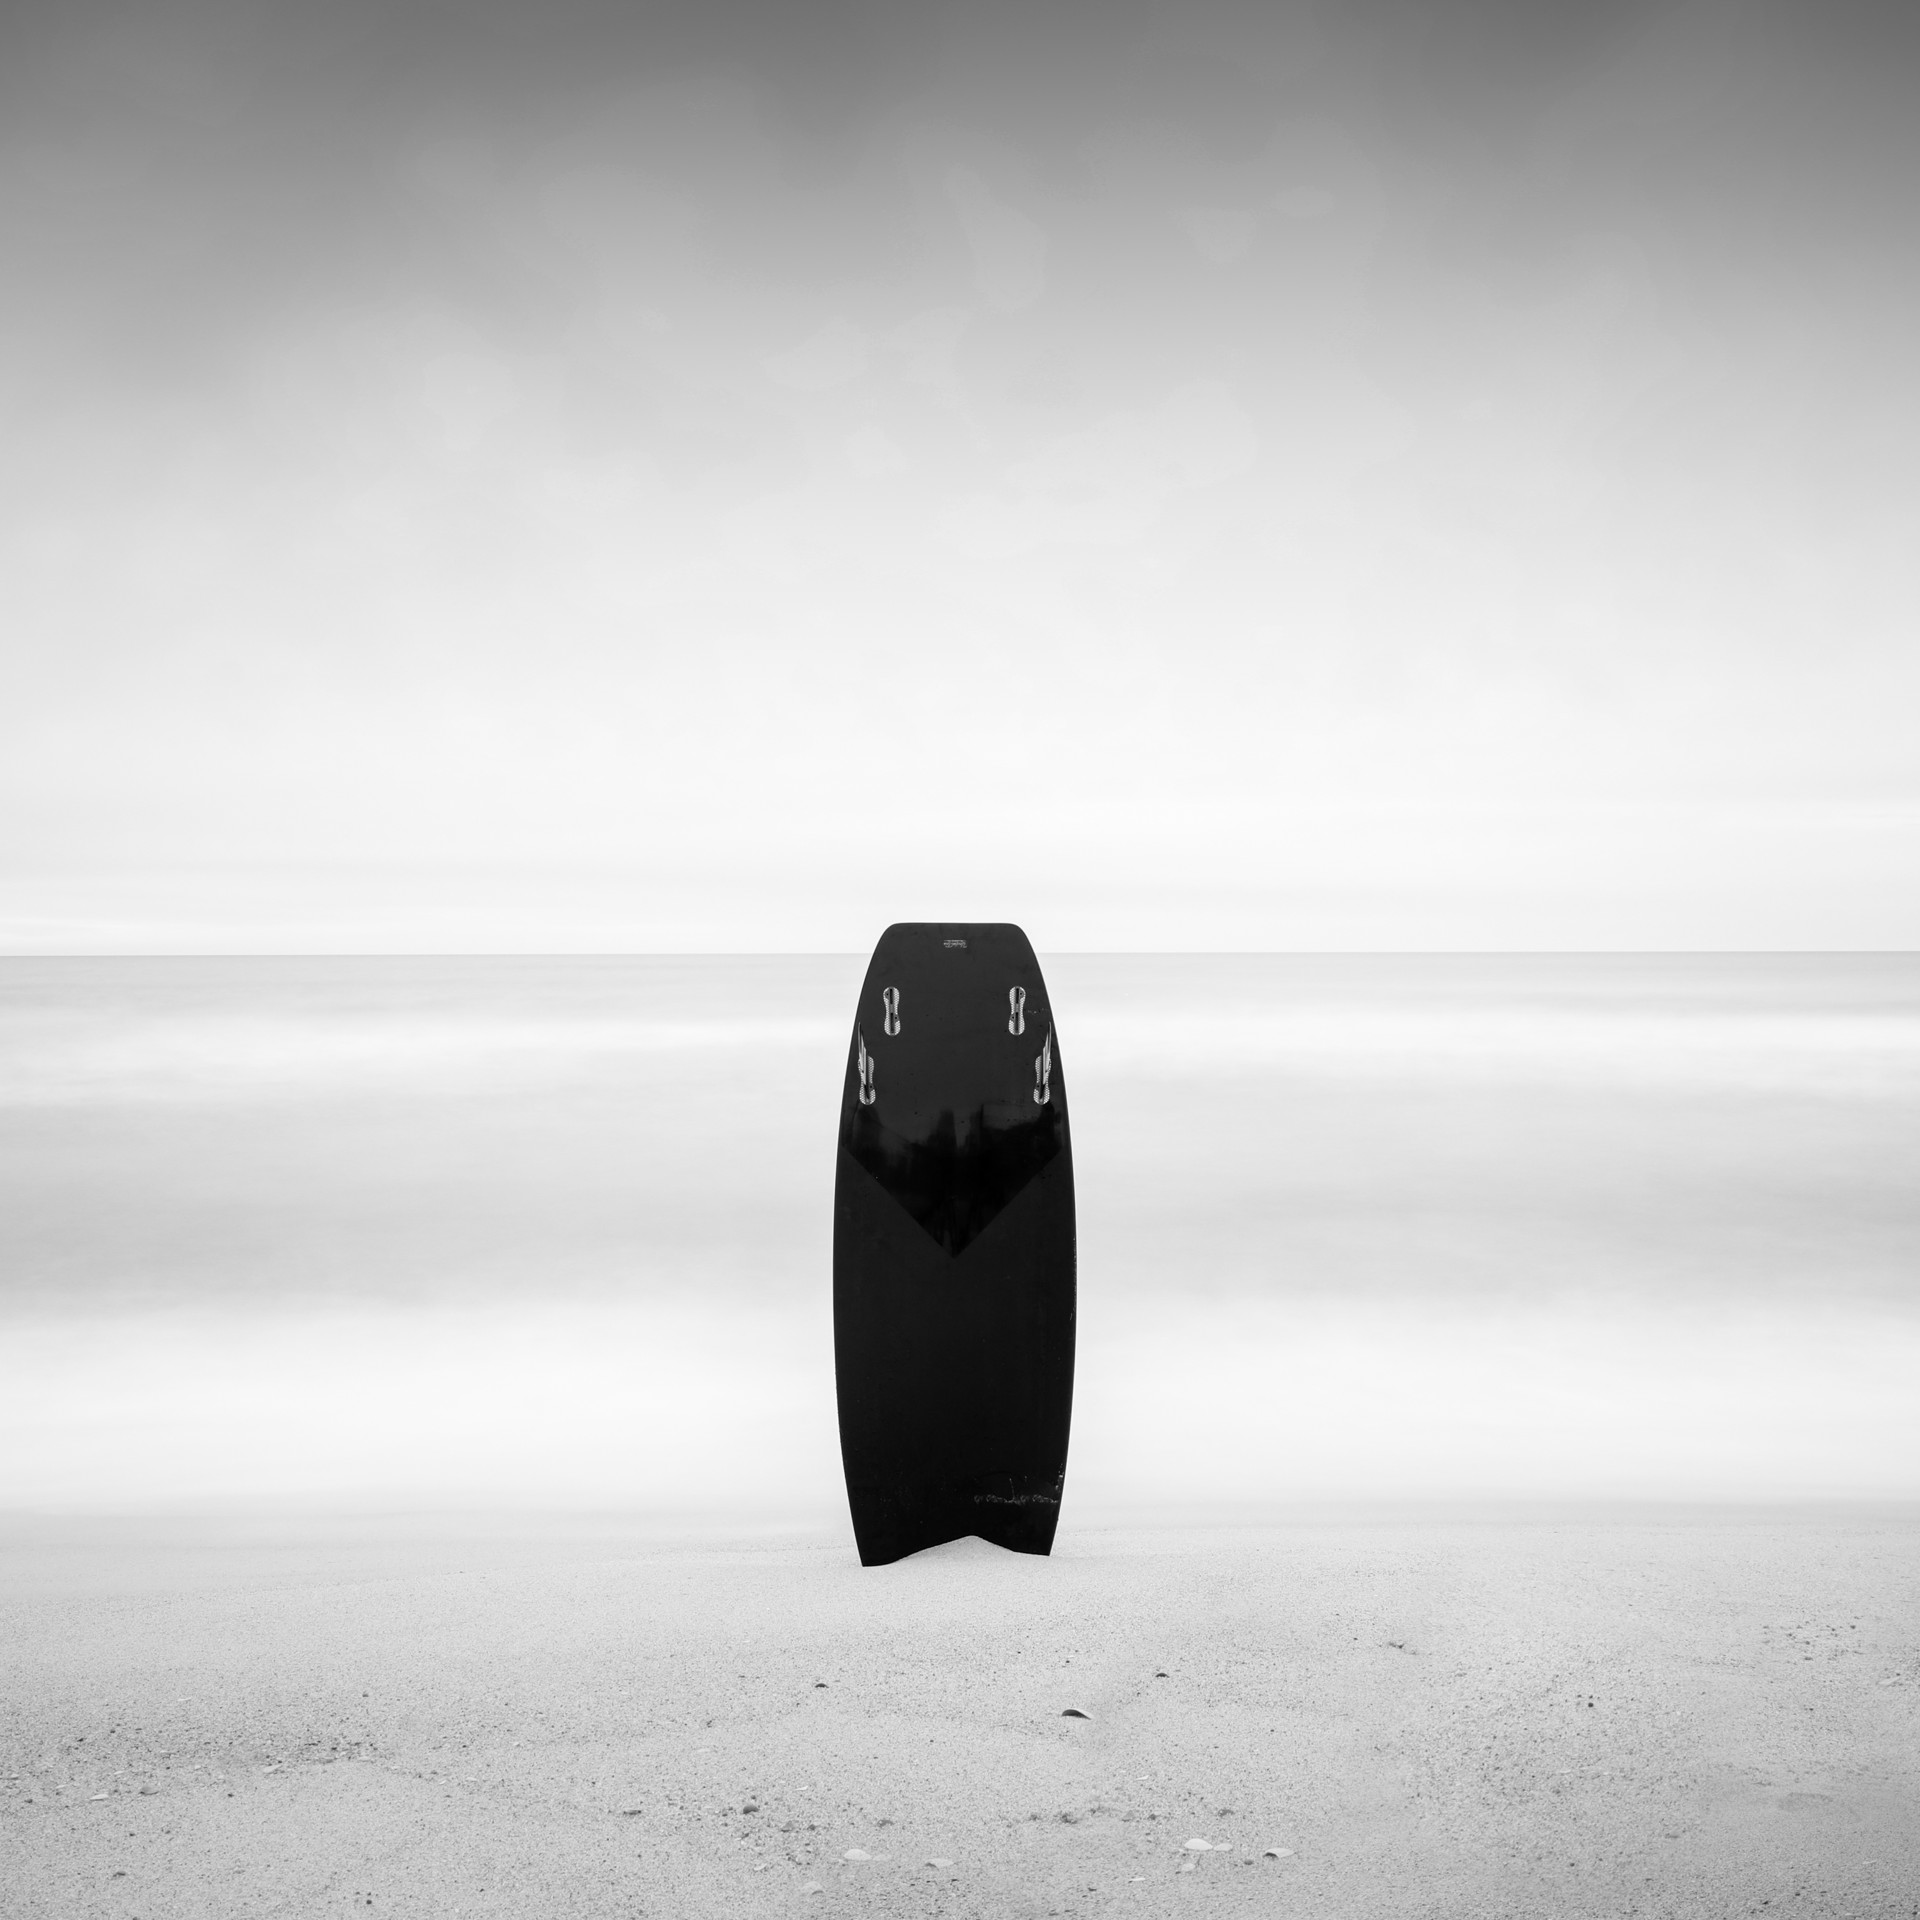 Black Dog Surfboard by Keith Ramsdell